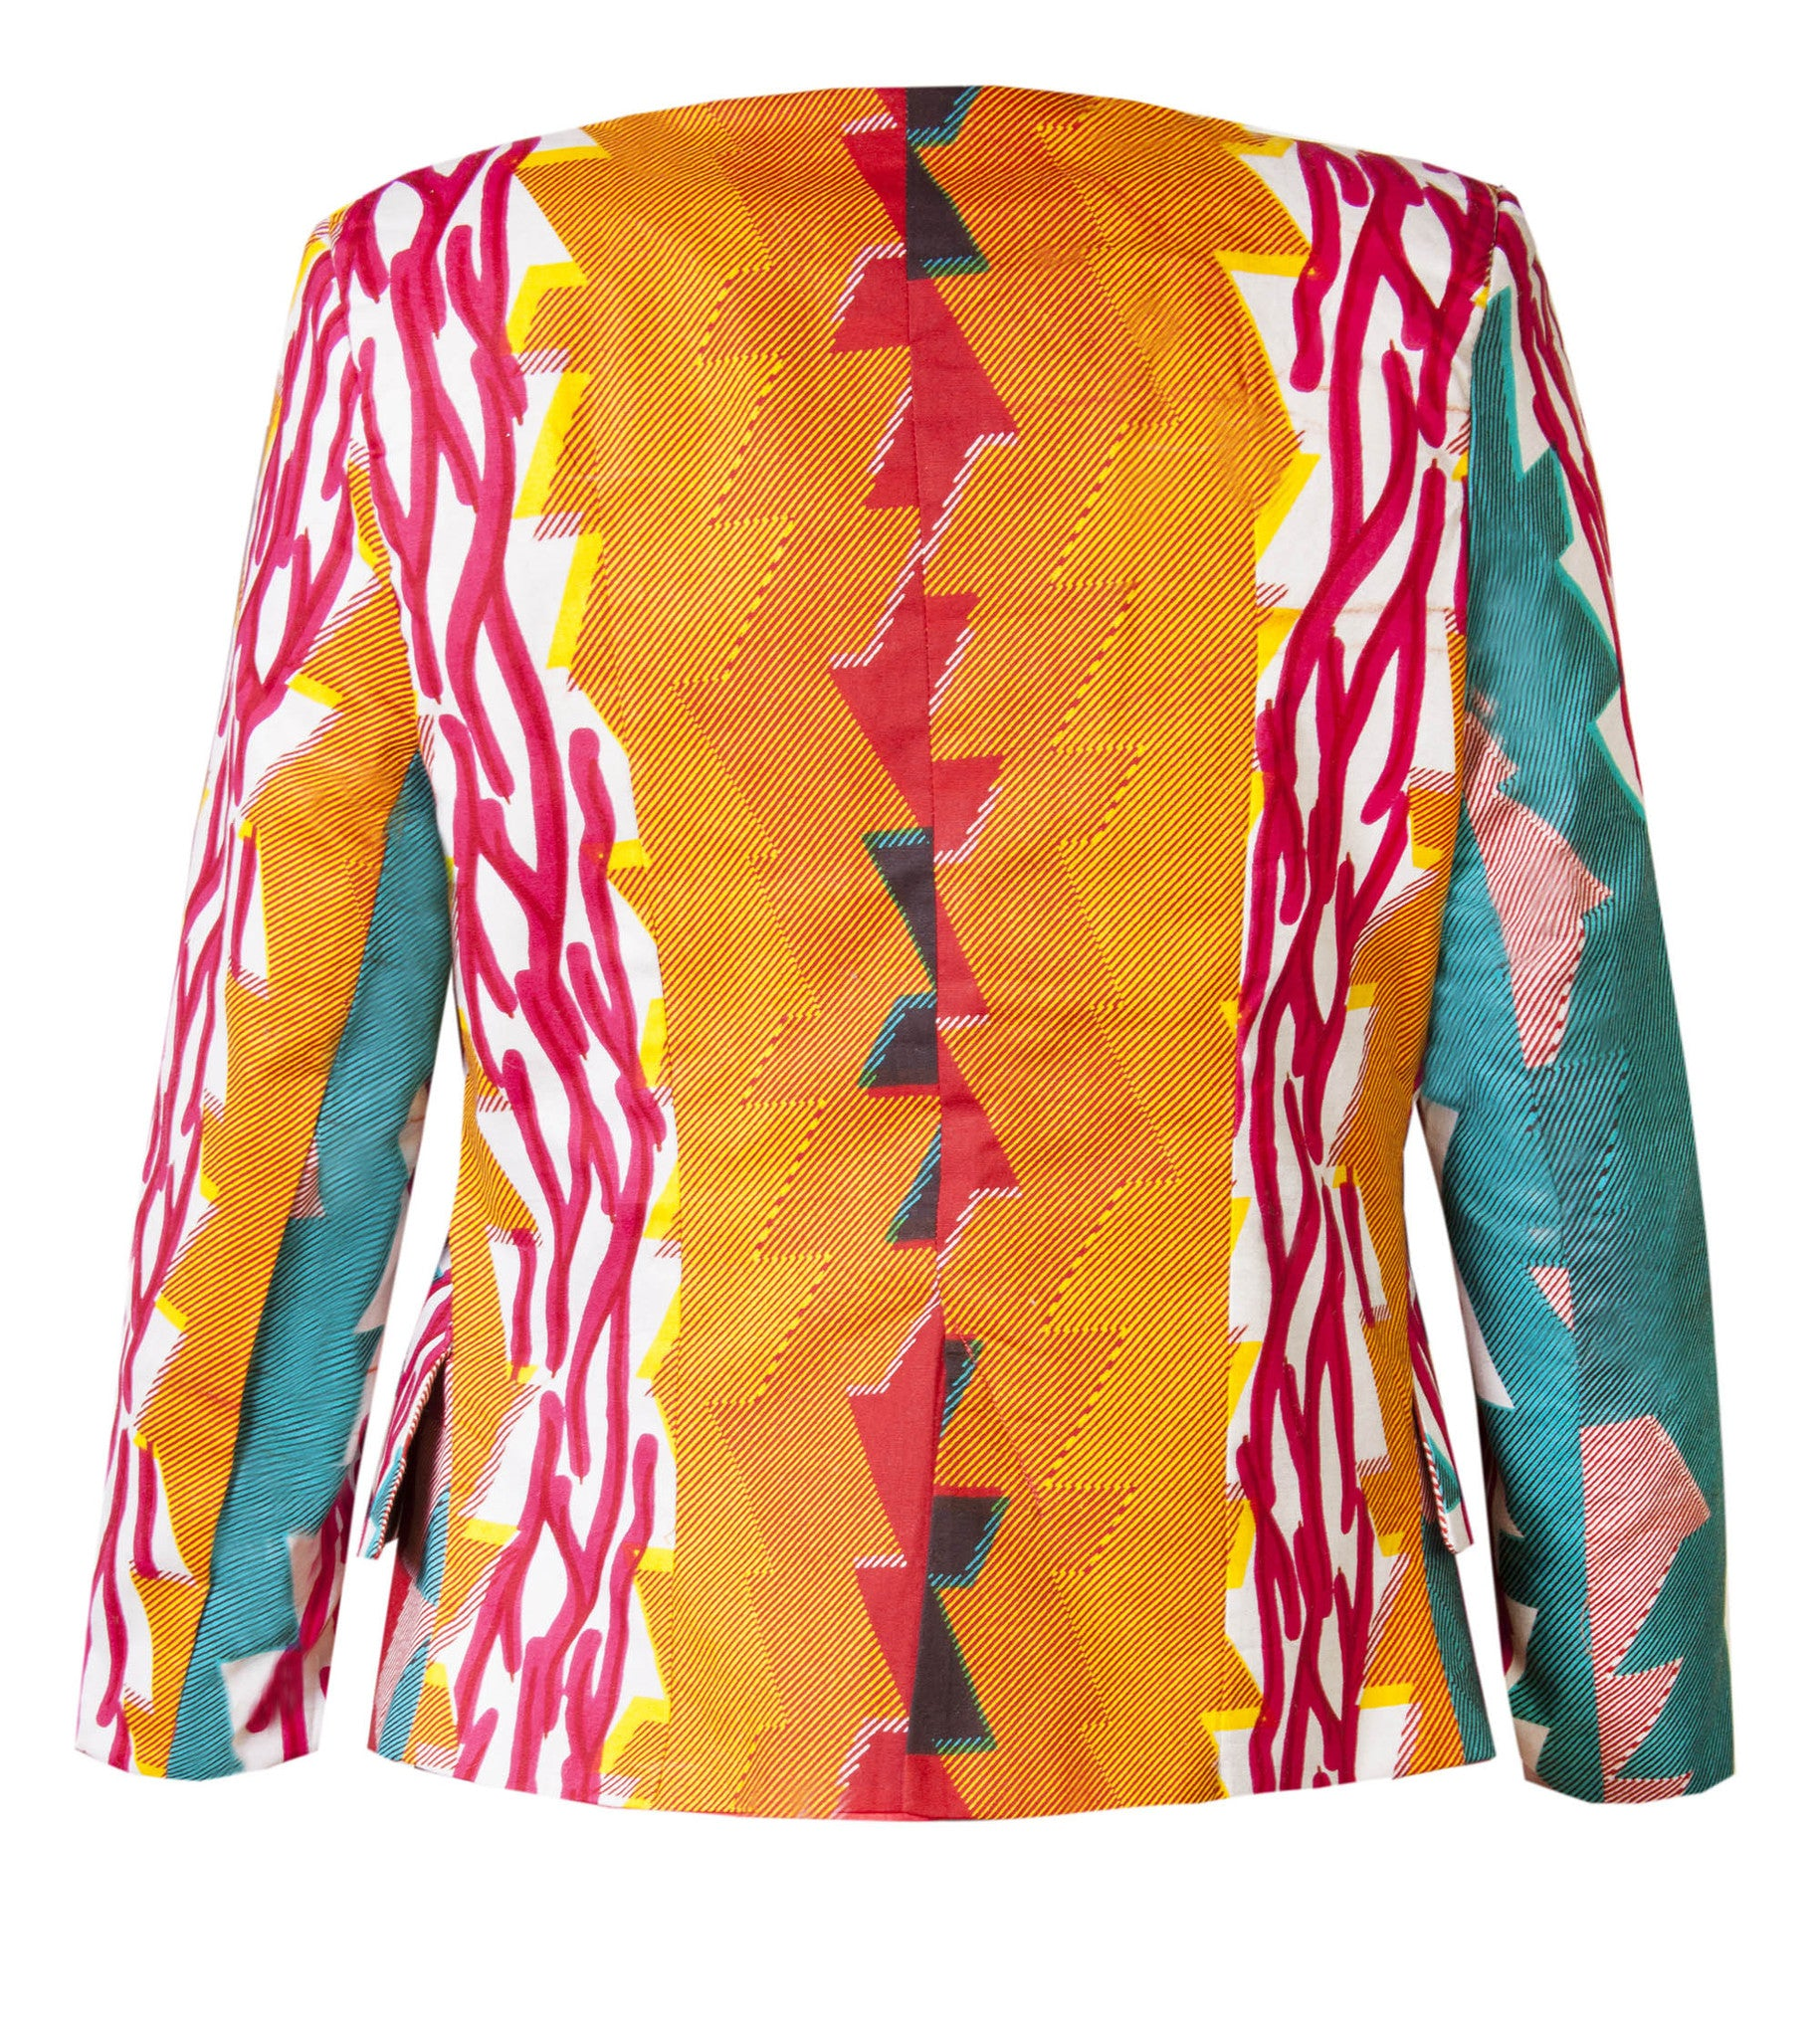 Katie-African print waterfall jacket-Stardust - OHEMA OHENE AFRICAN INSPIRED FASHION  - 2